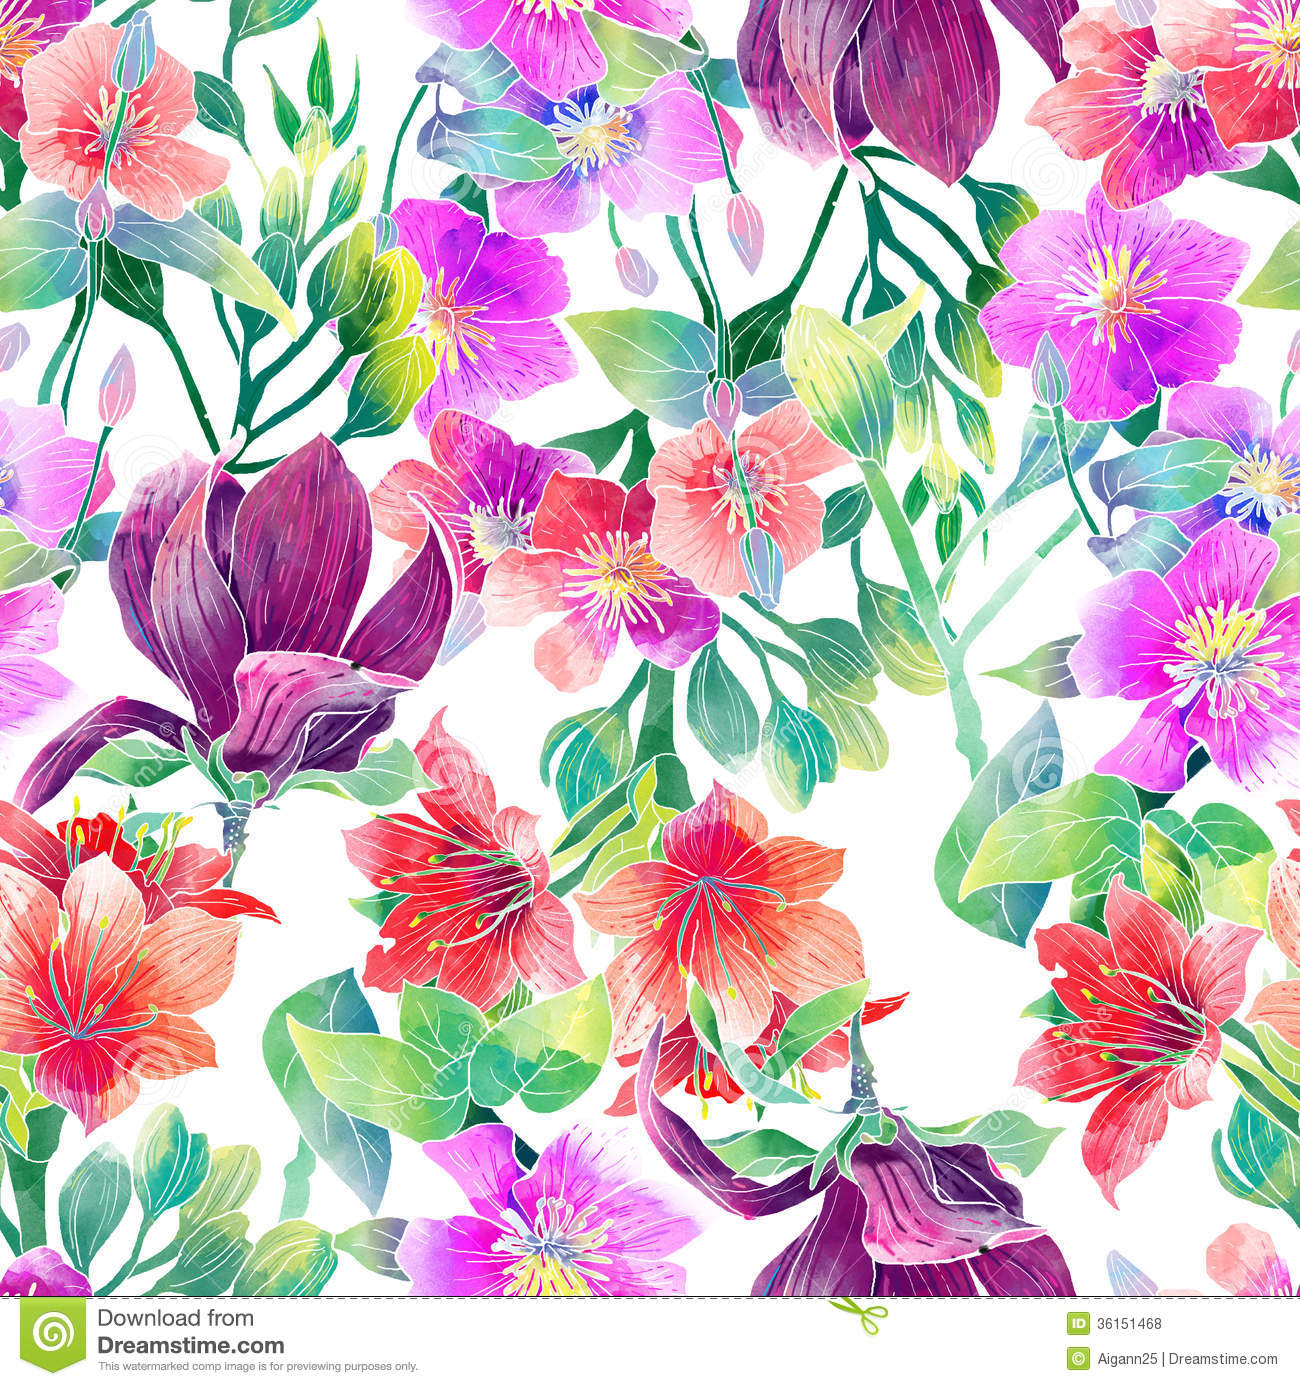 Free pictures of exotic flowers graphic transparent download Purple Exotic Flower Stock Photos, Images, & Pictures - 15,502 Images graphic transparent download